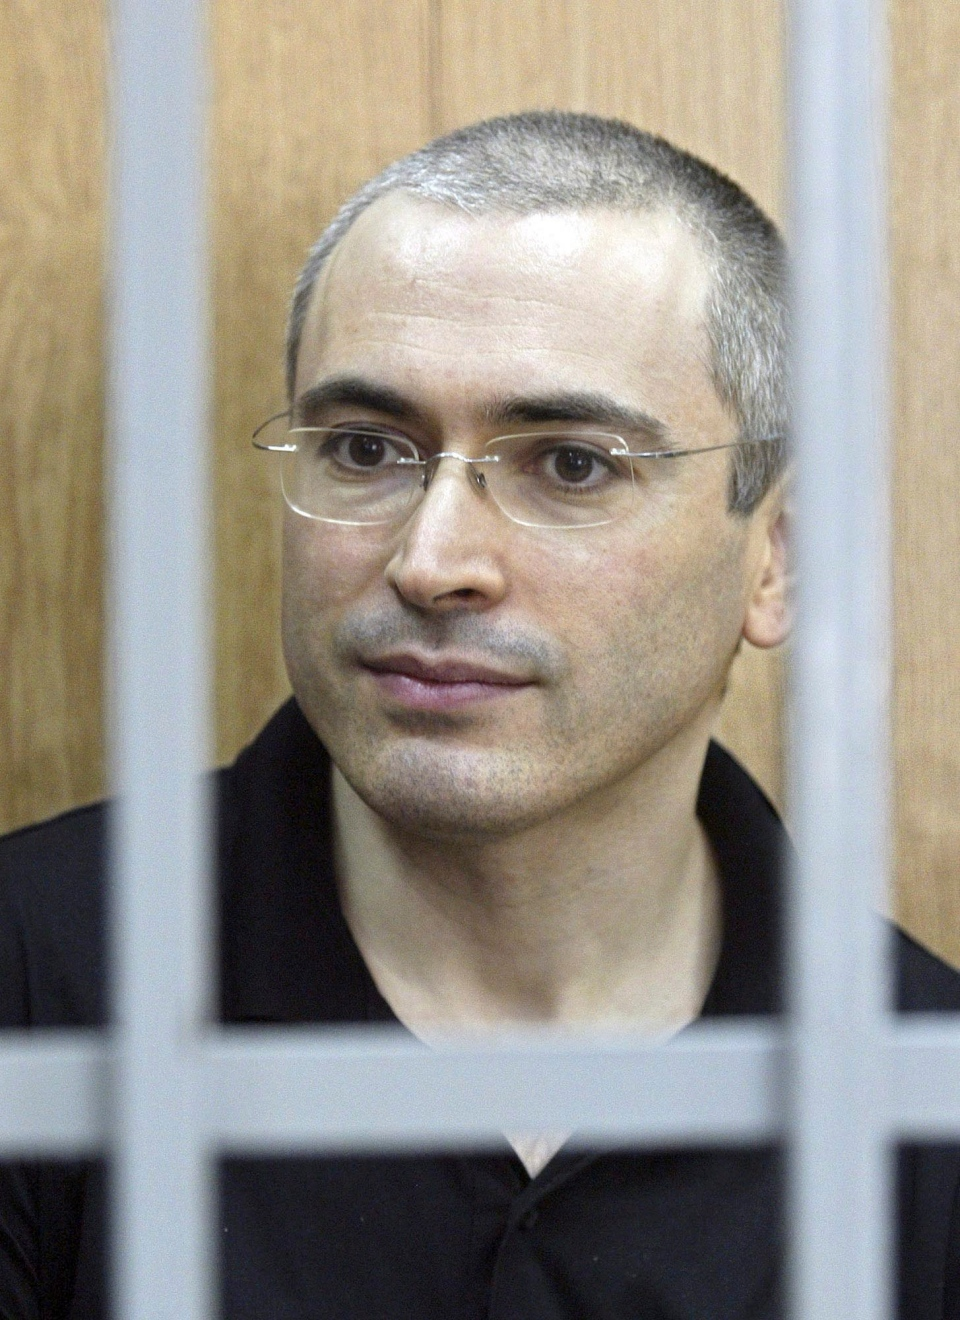 Former Yukos CEO Mikhail Khodorkovsky sits in a courtroom behind bars in Moscow, Russia, Friday, July 30, 2004. (AP / Sergey Ponomarev)